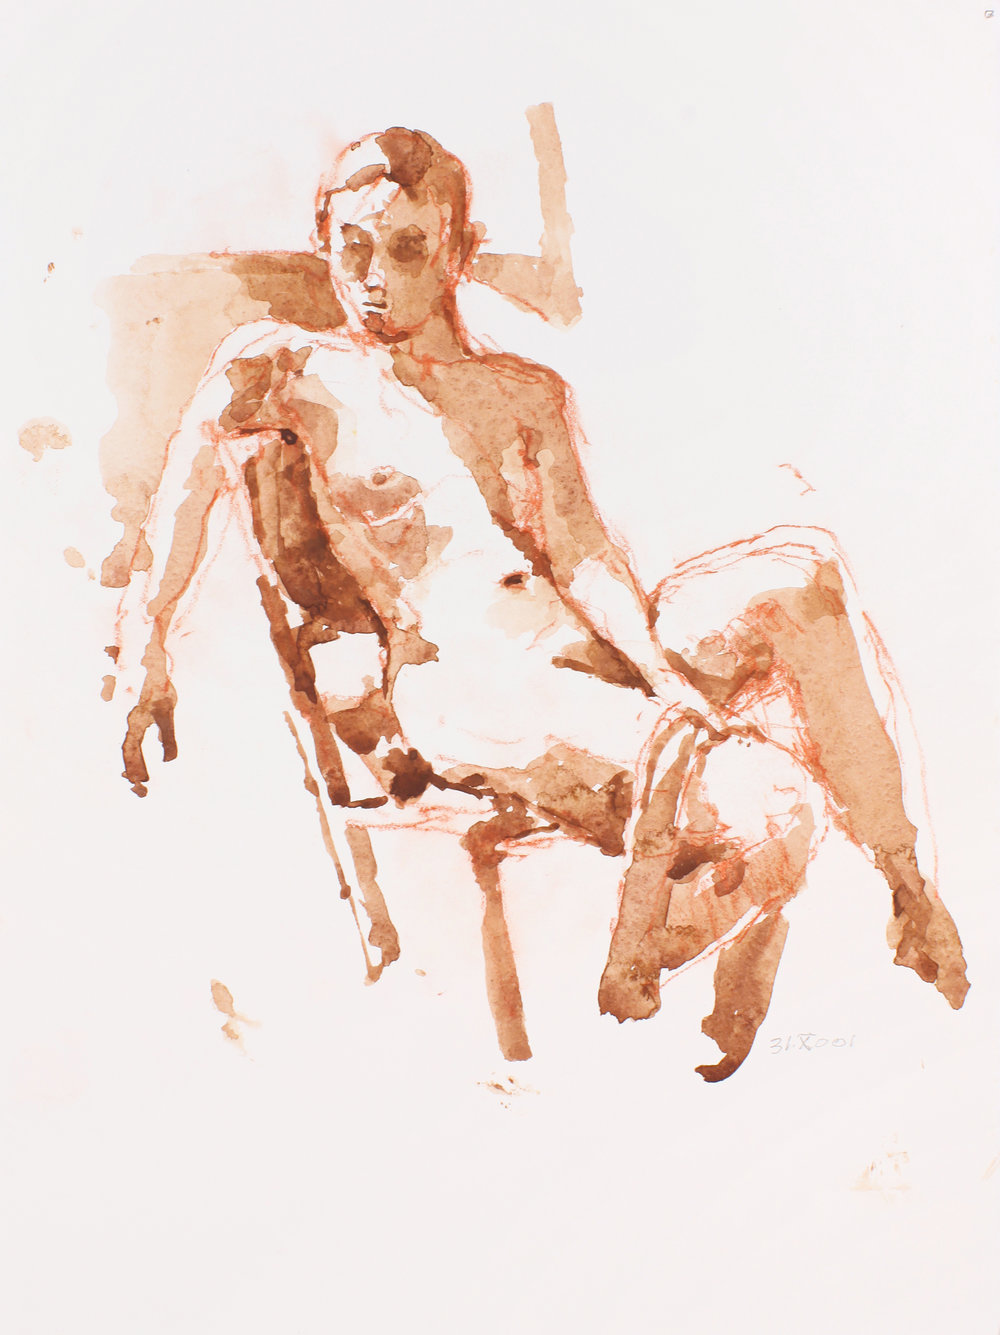 2001_Seated_Nude_with_Scarf_Wrapped_Around_Left_Leg_watercolour_and_red_conté_on_paper_15x11in_WPF154.jpg